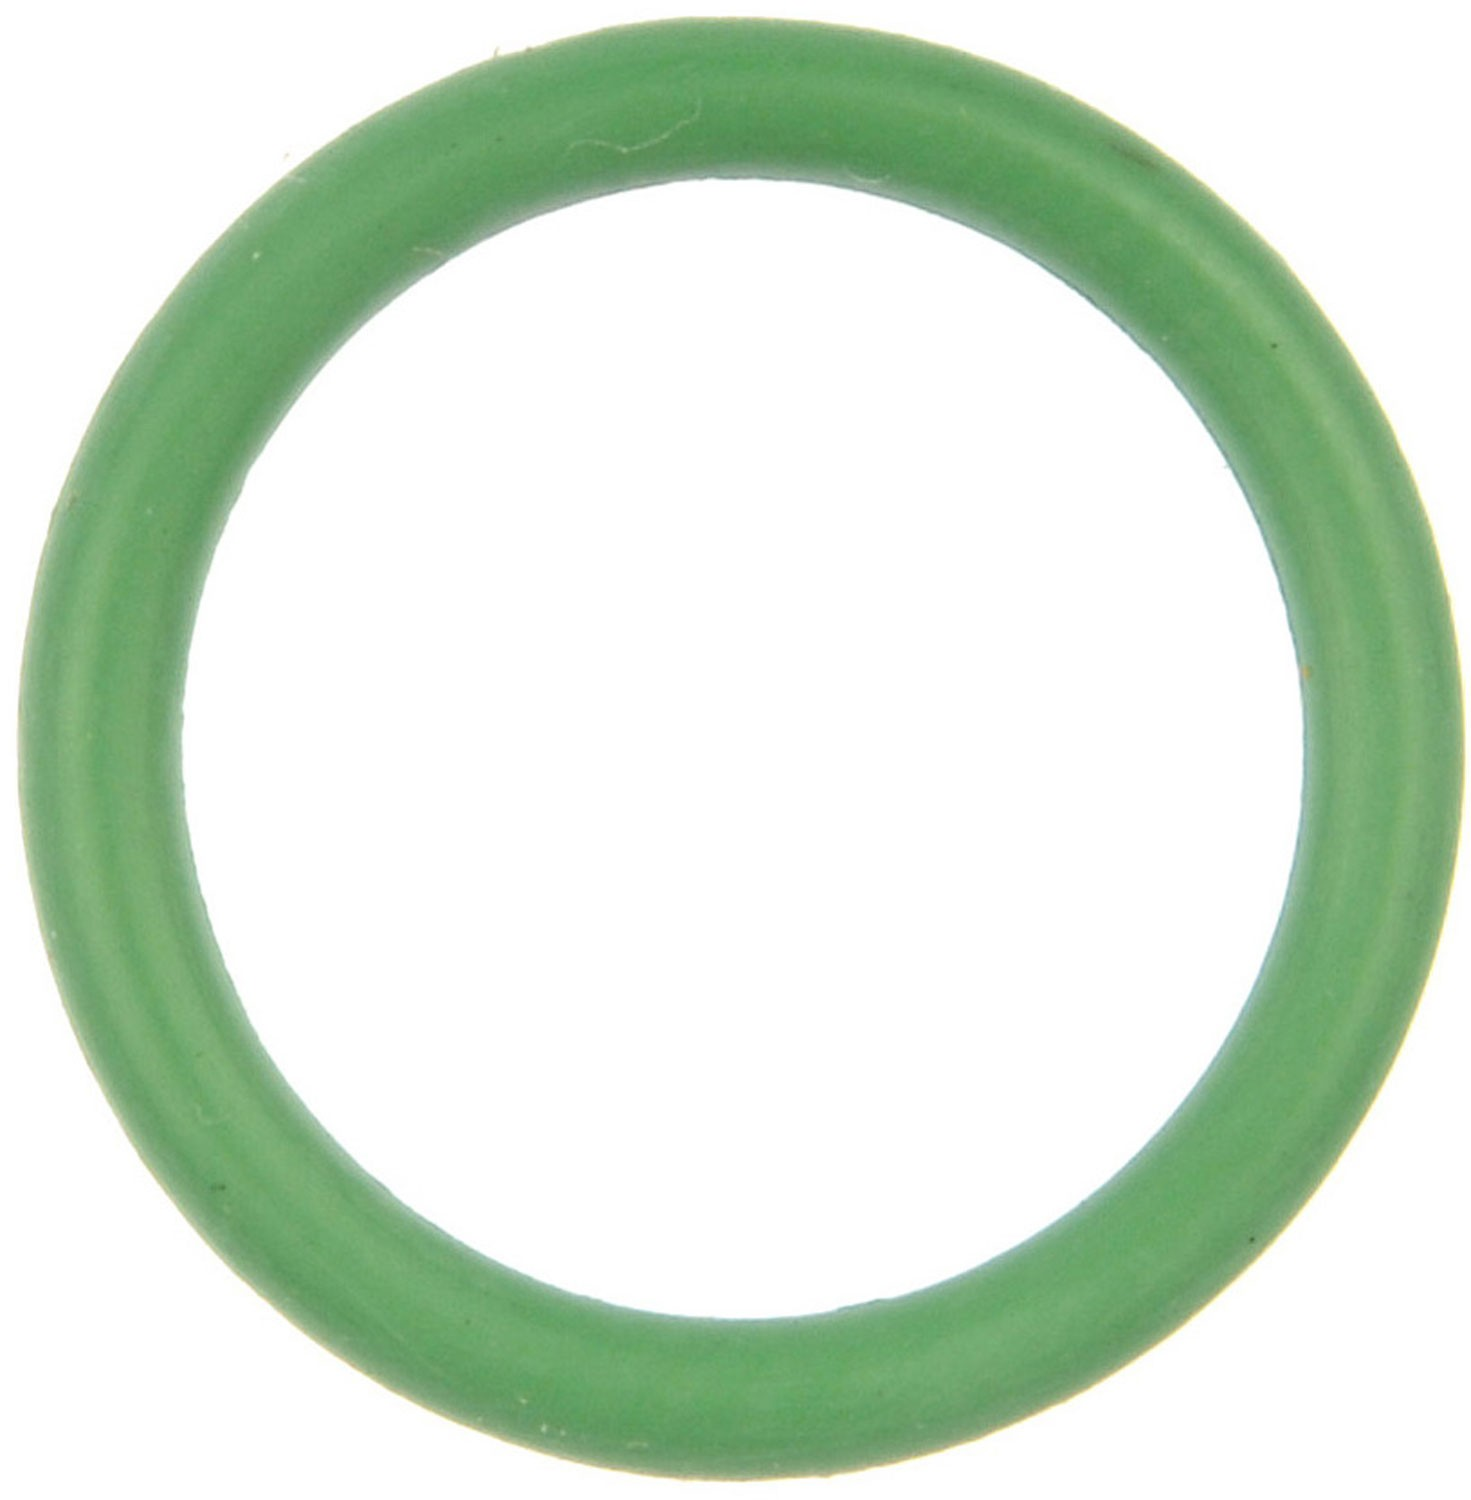 O-Ring-Air Conditioning- No  8 ATCO Compression Fitting - Dorman# 487-401